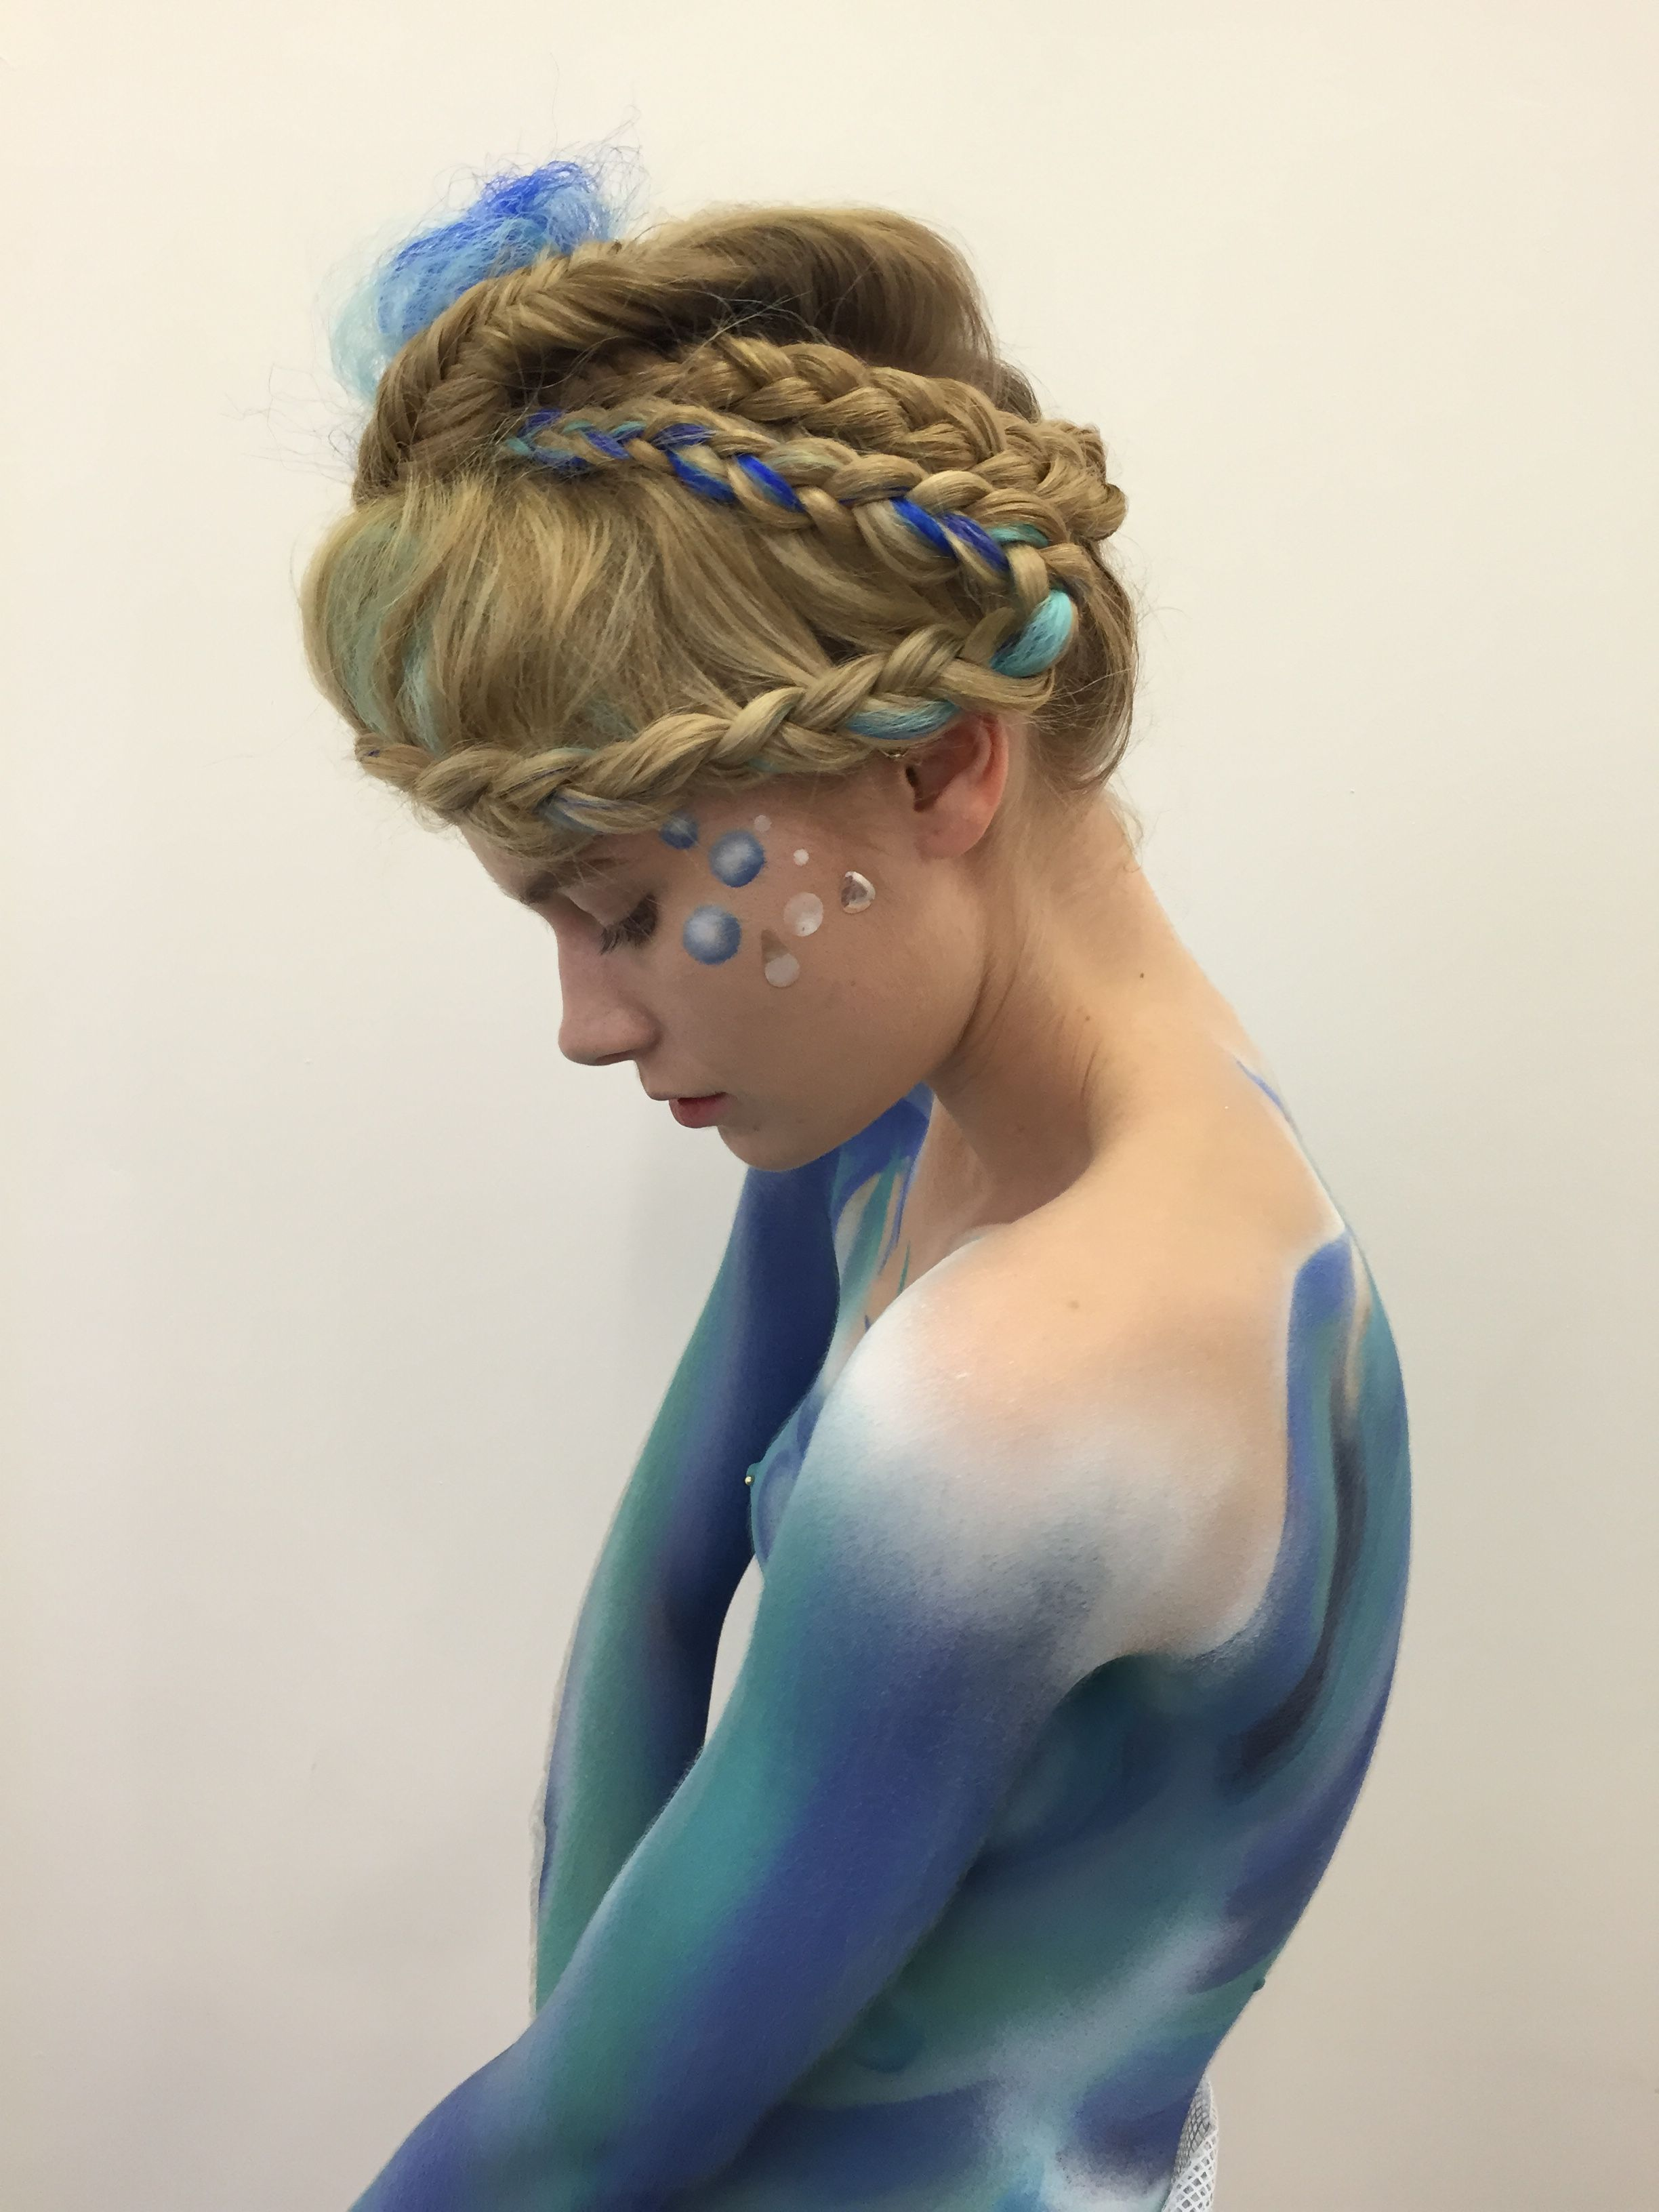 BodyPainting MediaMakeup (With images) Makeup course